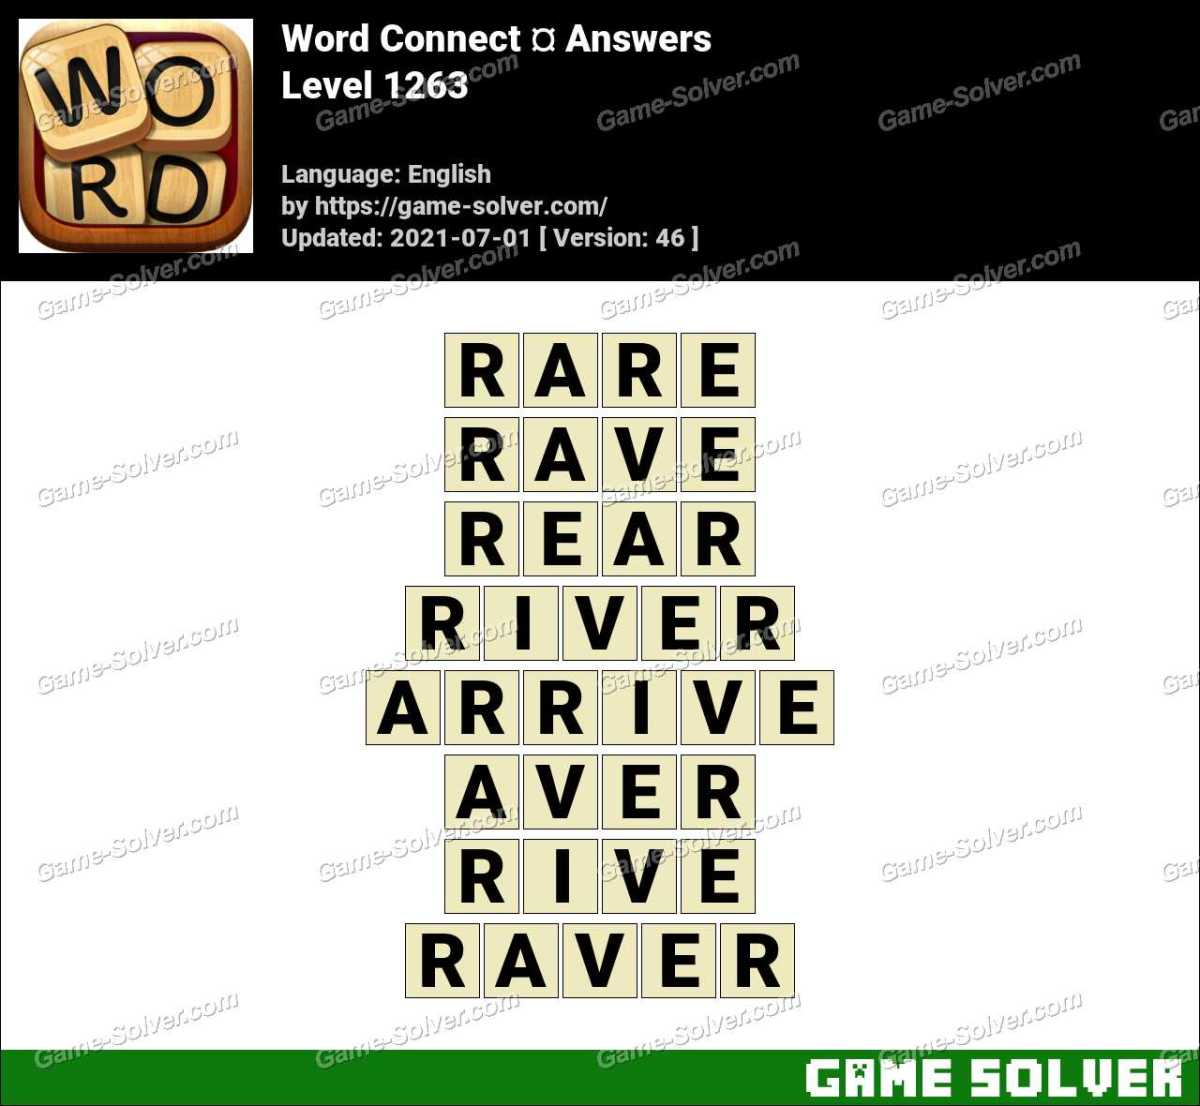 Word Connect Level 1263 Answers